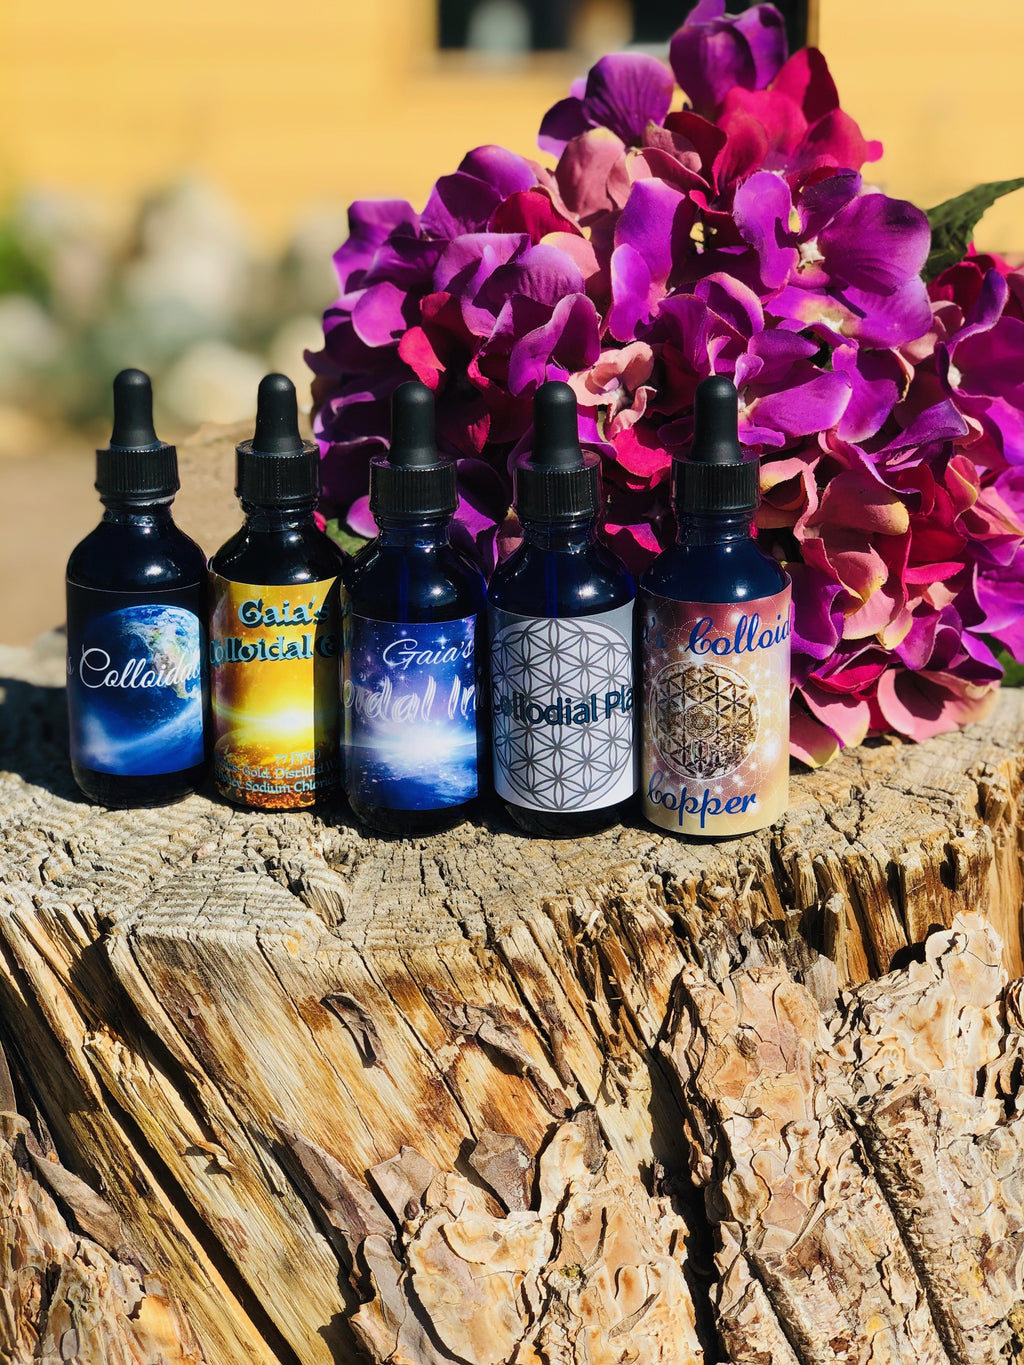 Gaia's Colloidal Sample Kit - Gaia's Whole Healing Essentials